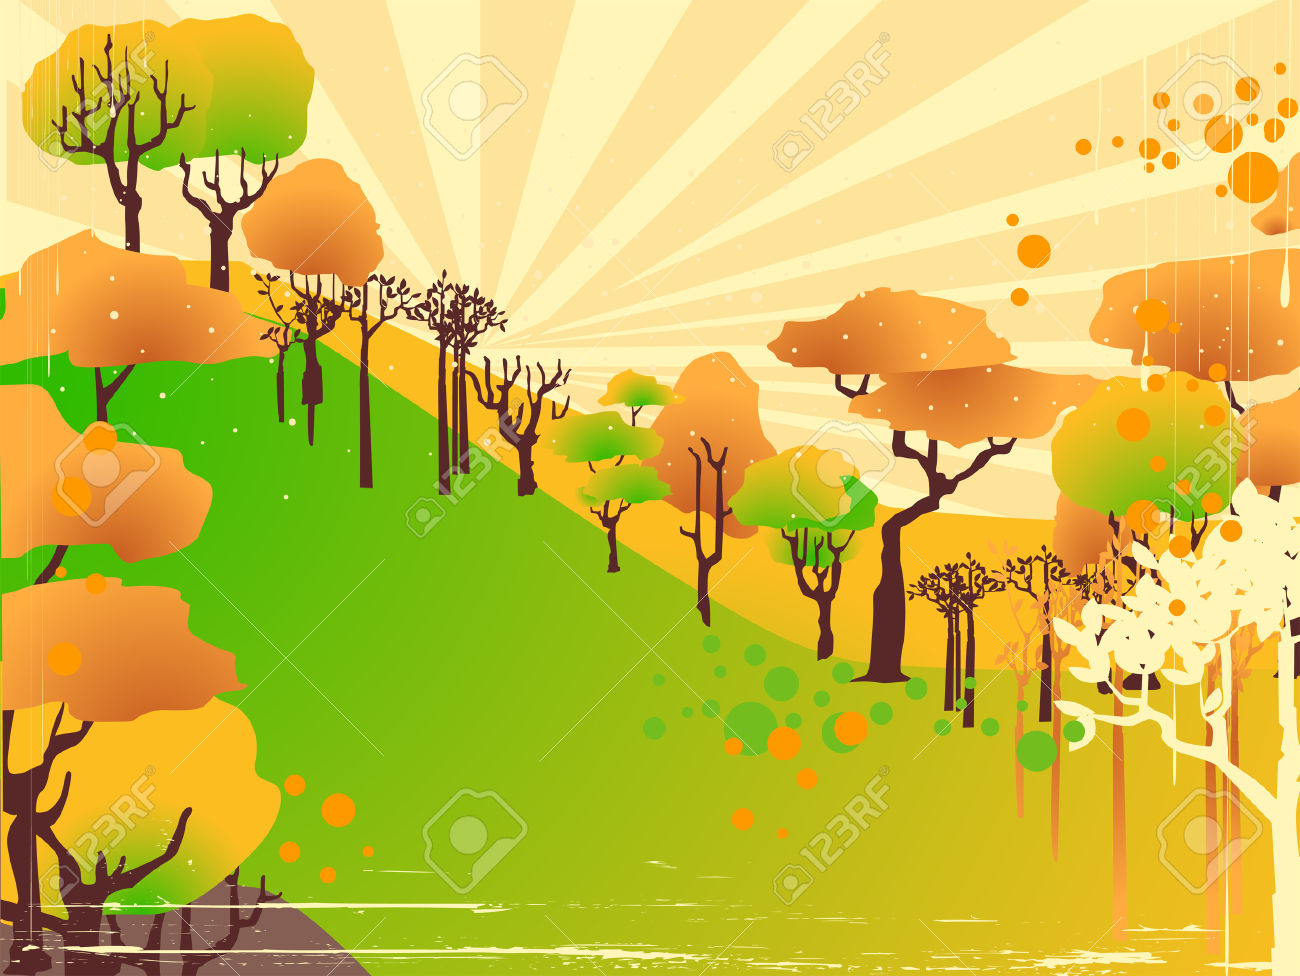 Trees On A Hilltop Illustration Royalty Free Cliparts, Vectors.